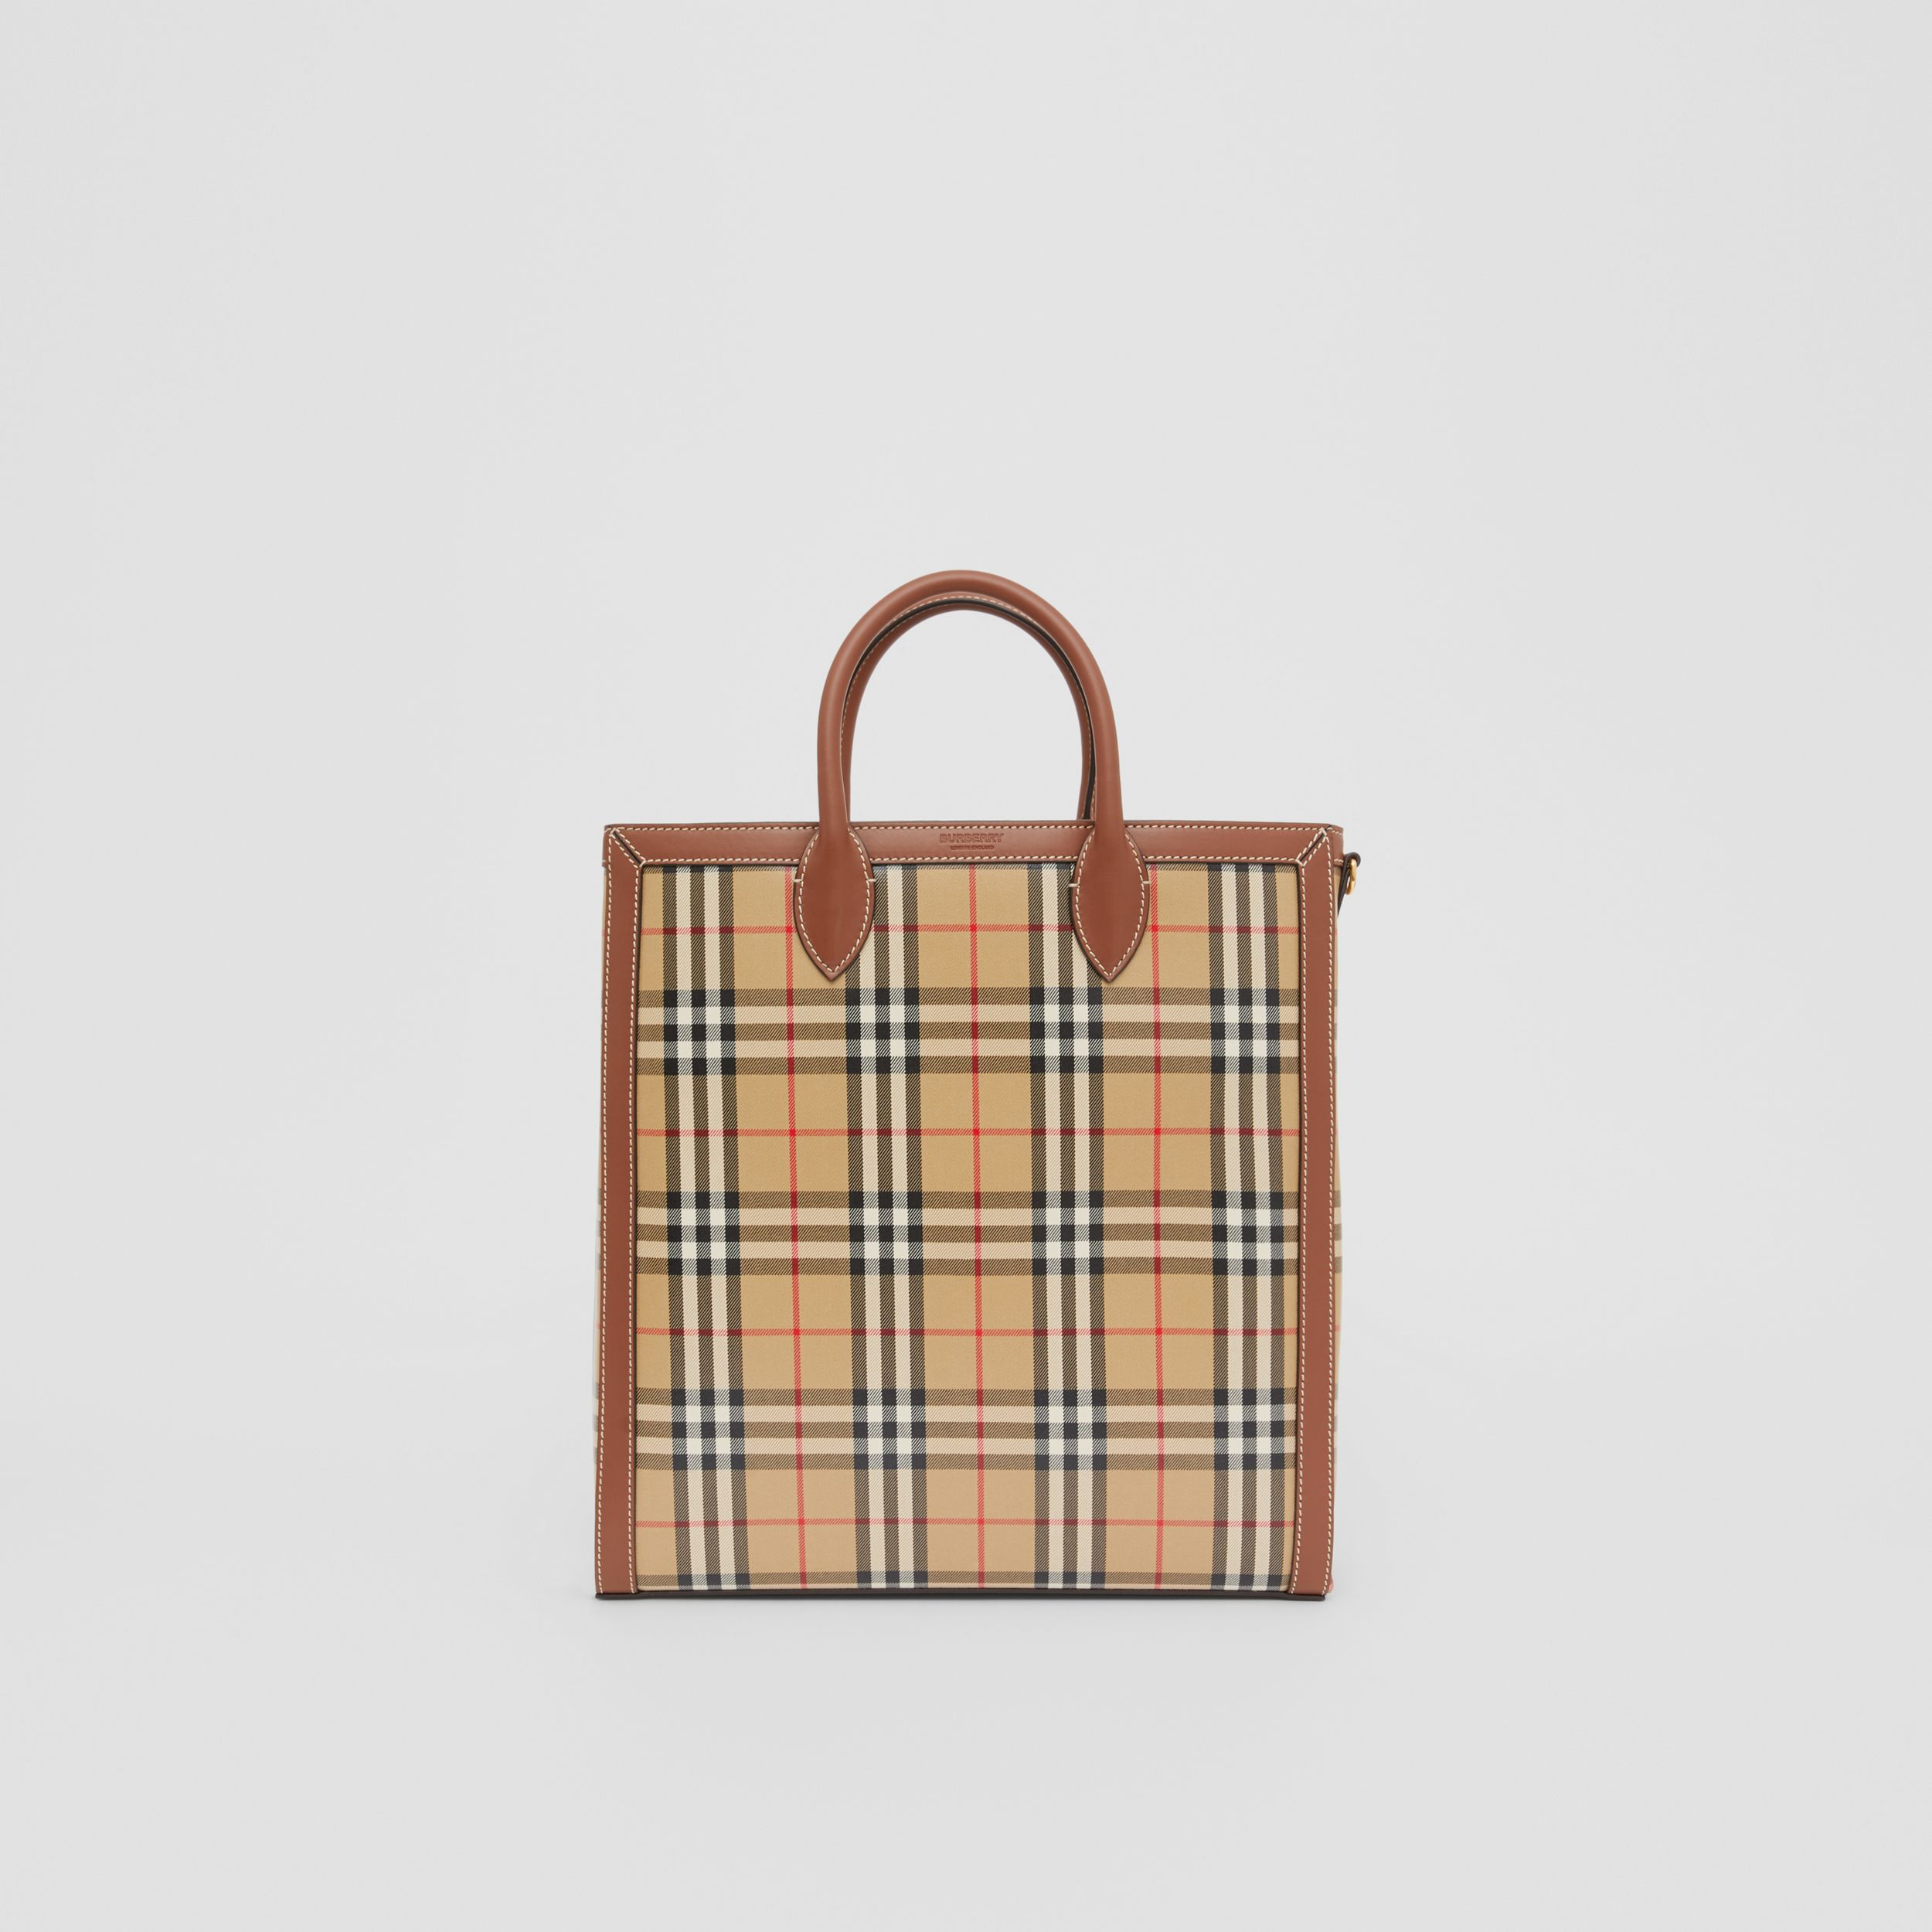 Medium Vintage Check Coated Canvas Tote in Archive Beige - Men | Burberry - 1